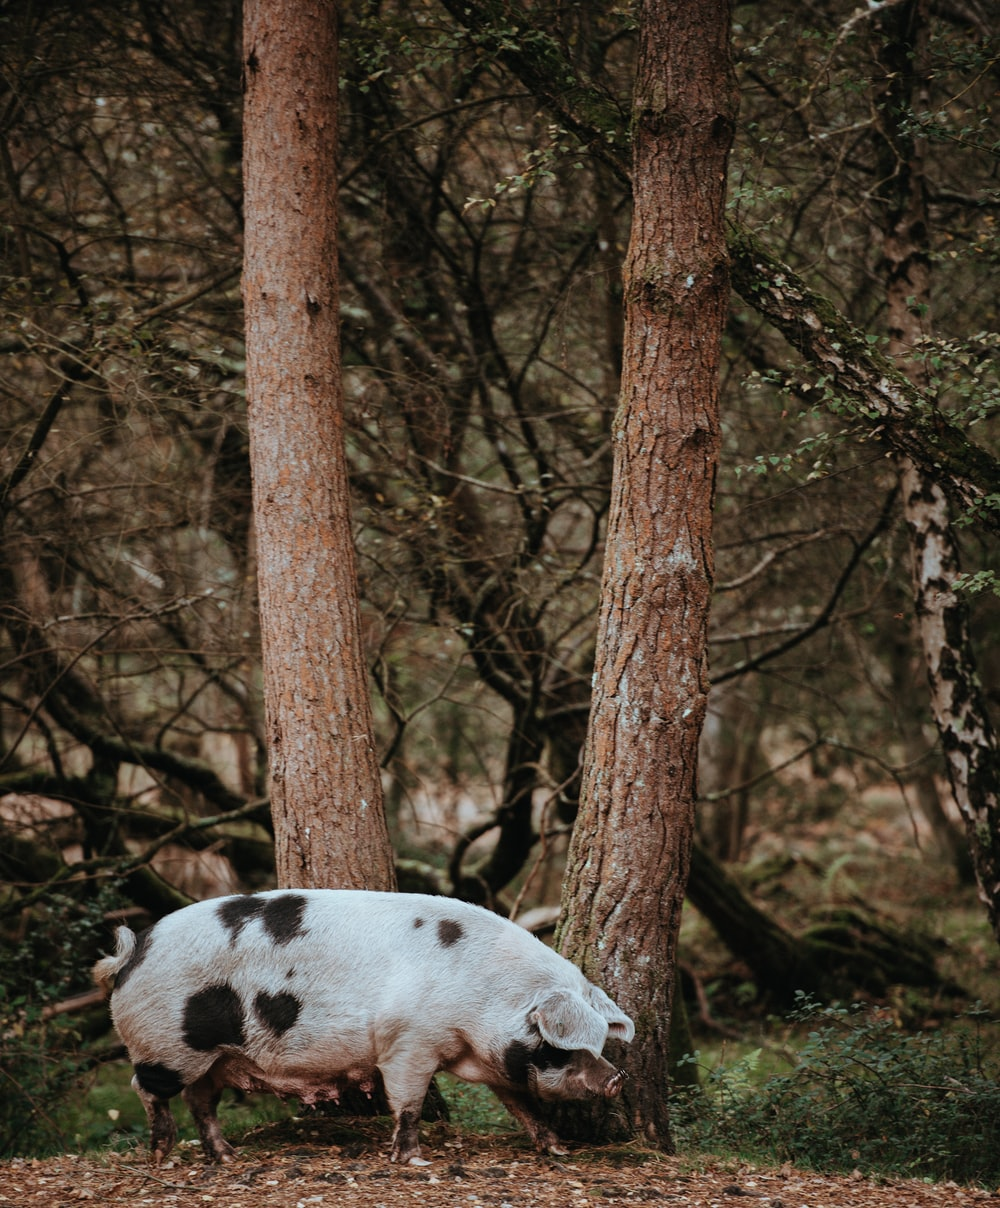 white and black pig standing near trees